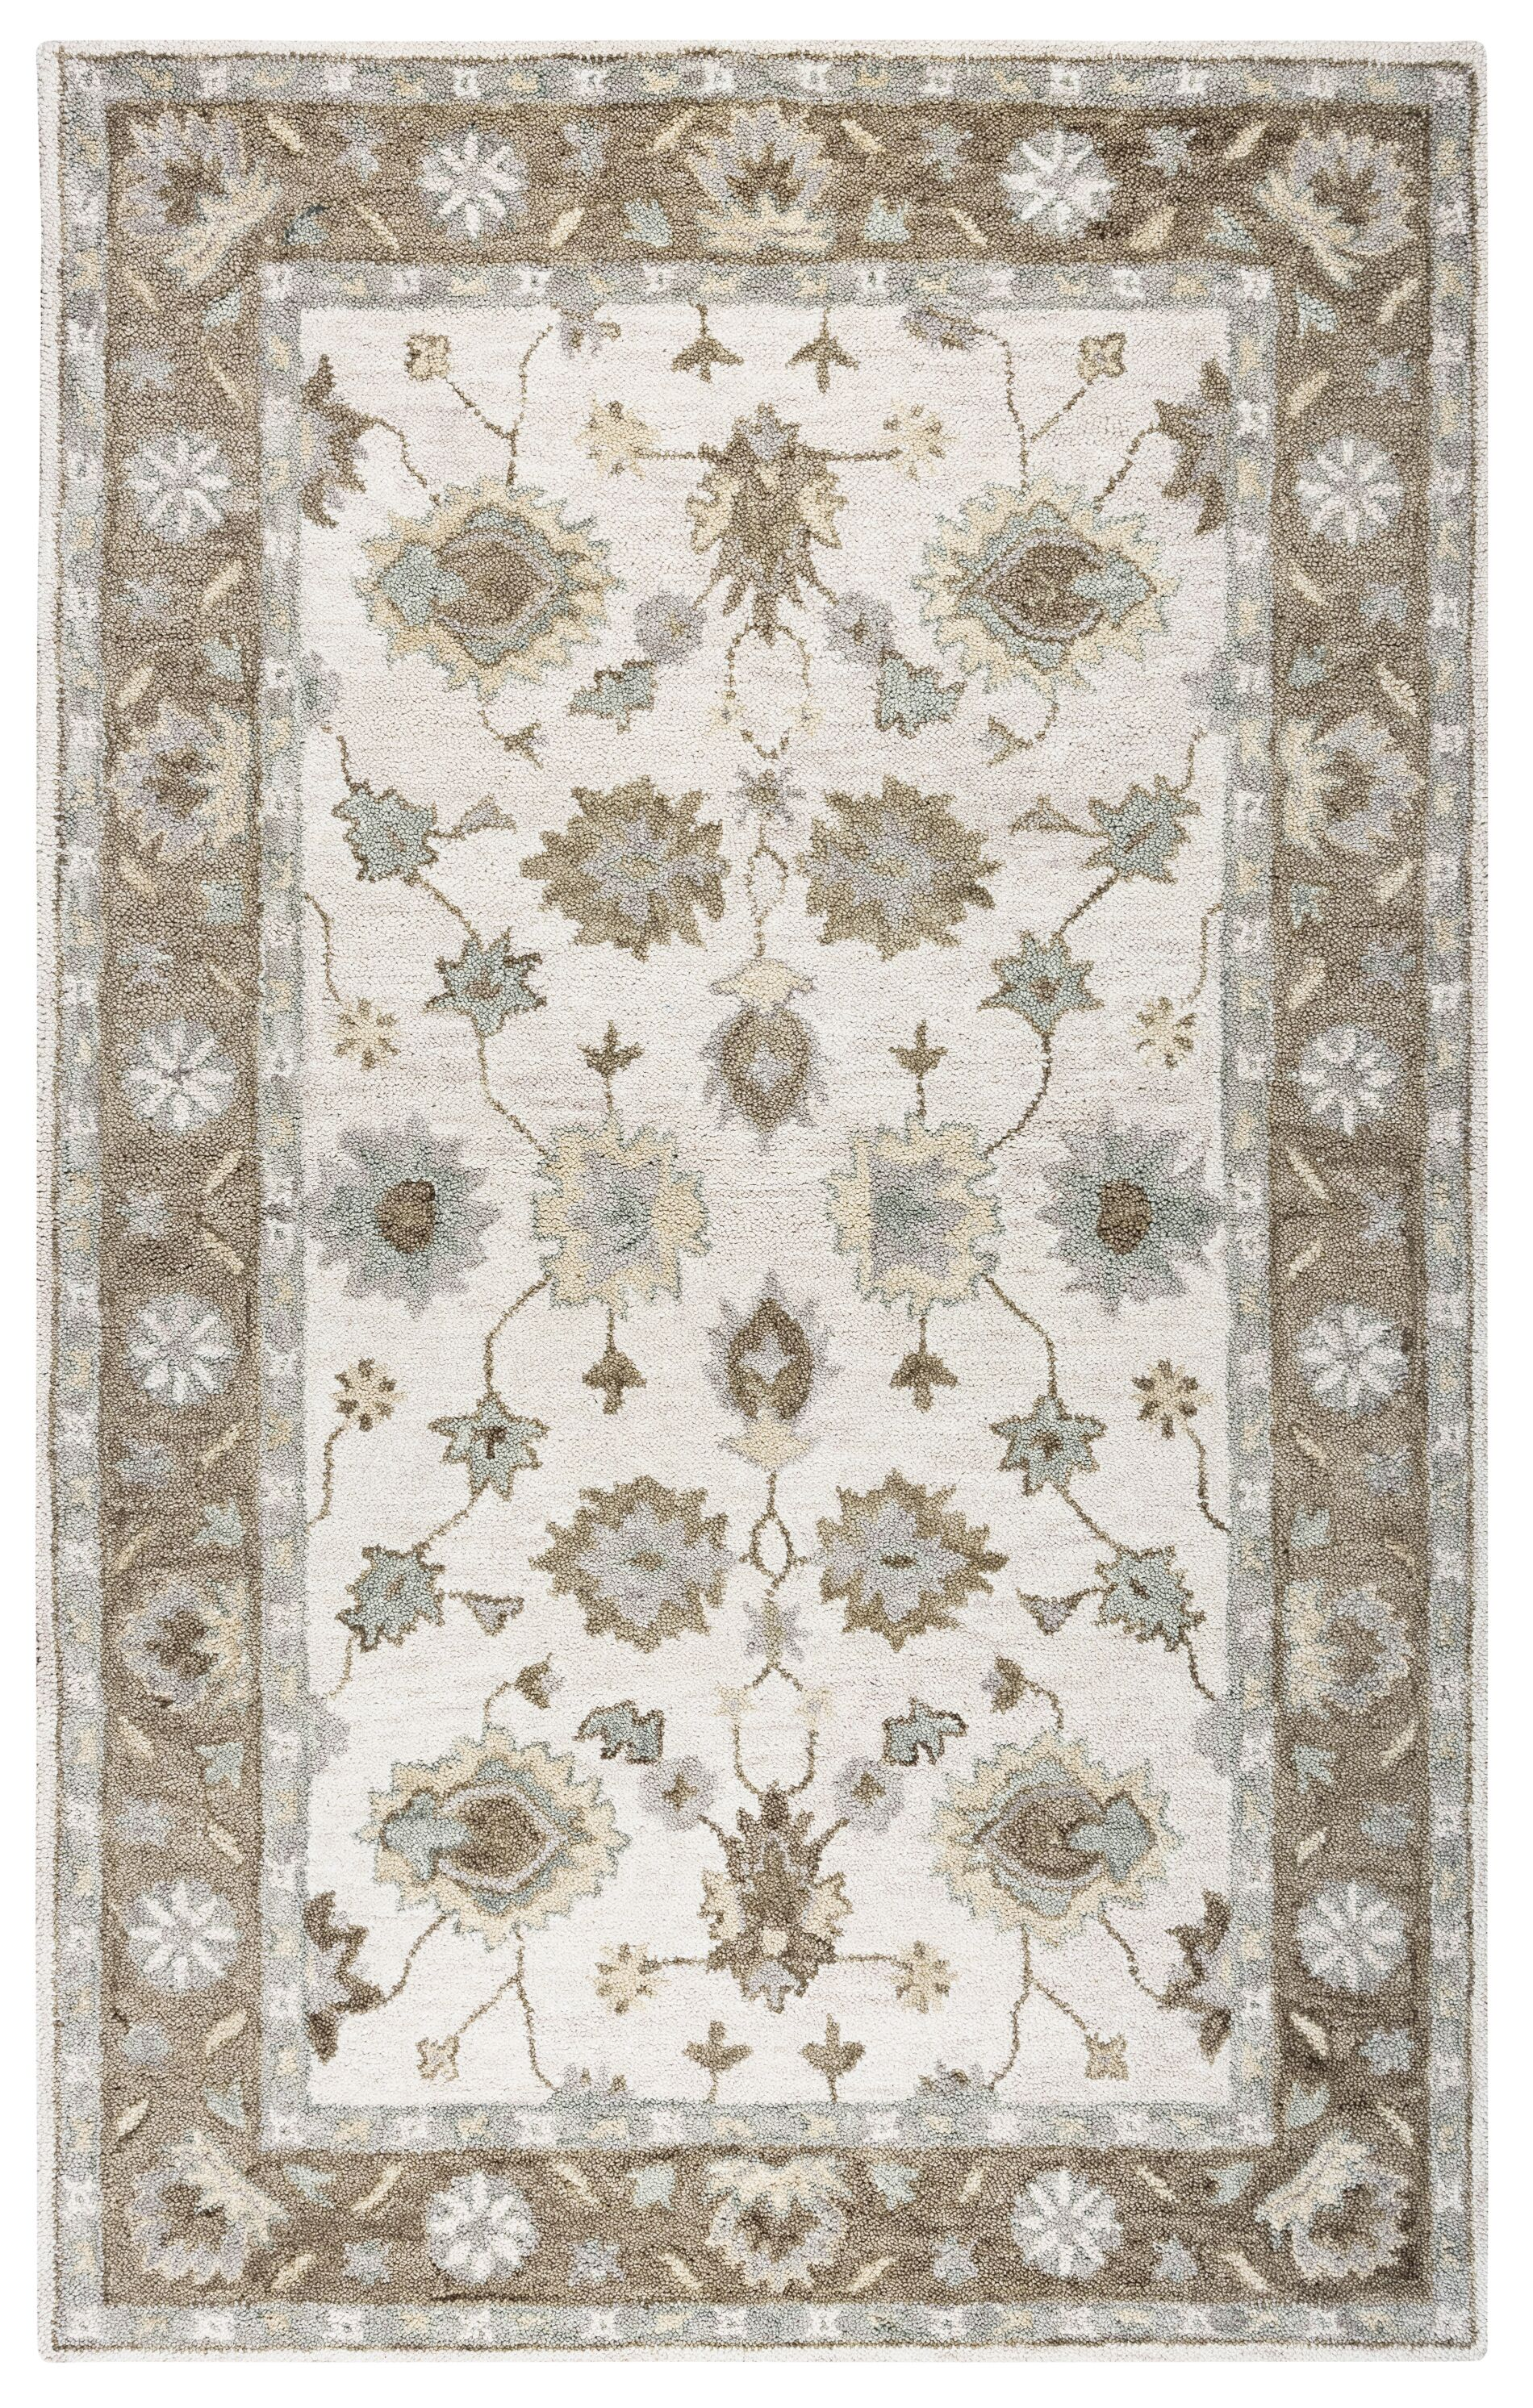 Jelia Hand-Tufted Natural Area Rug Size: Rectangle 5' x 8'